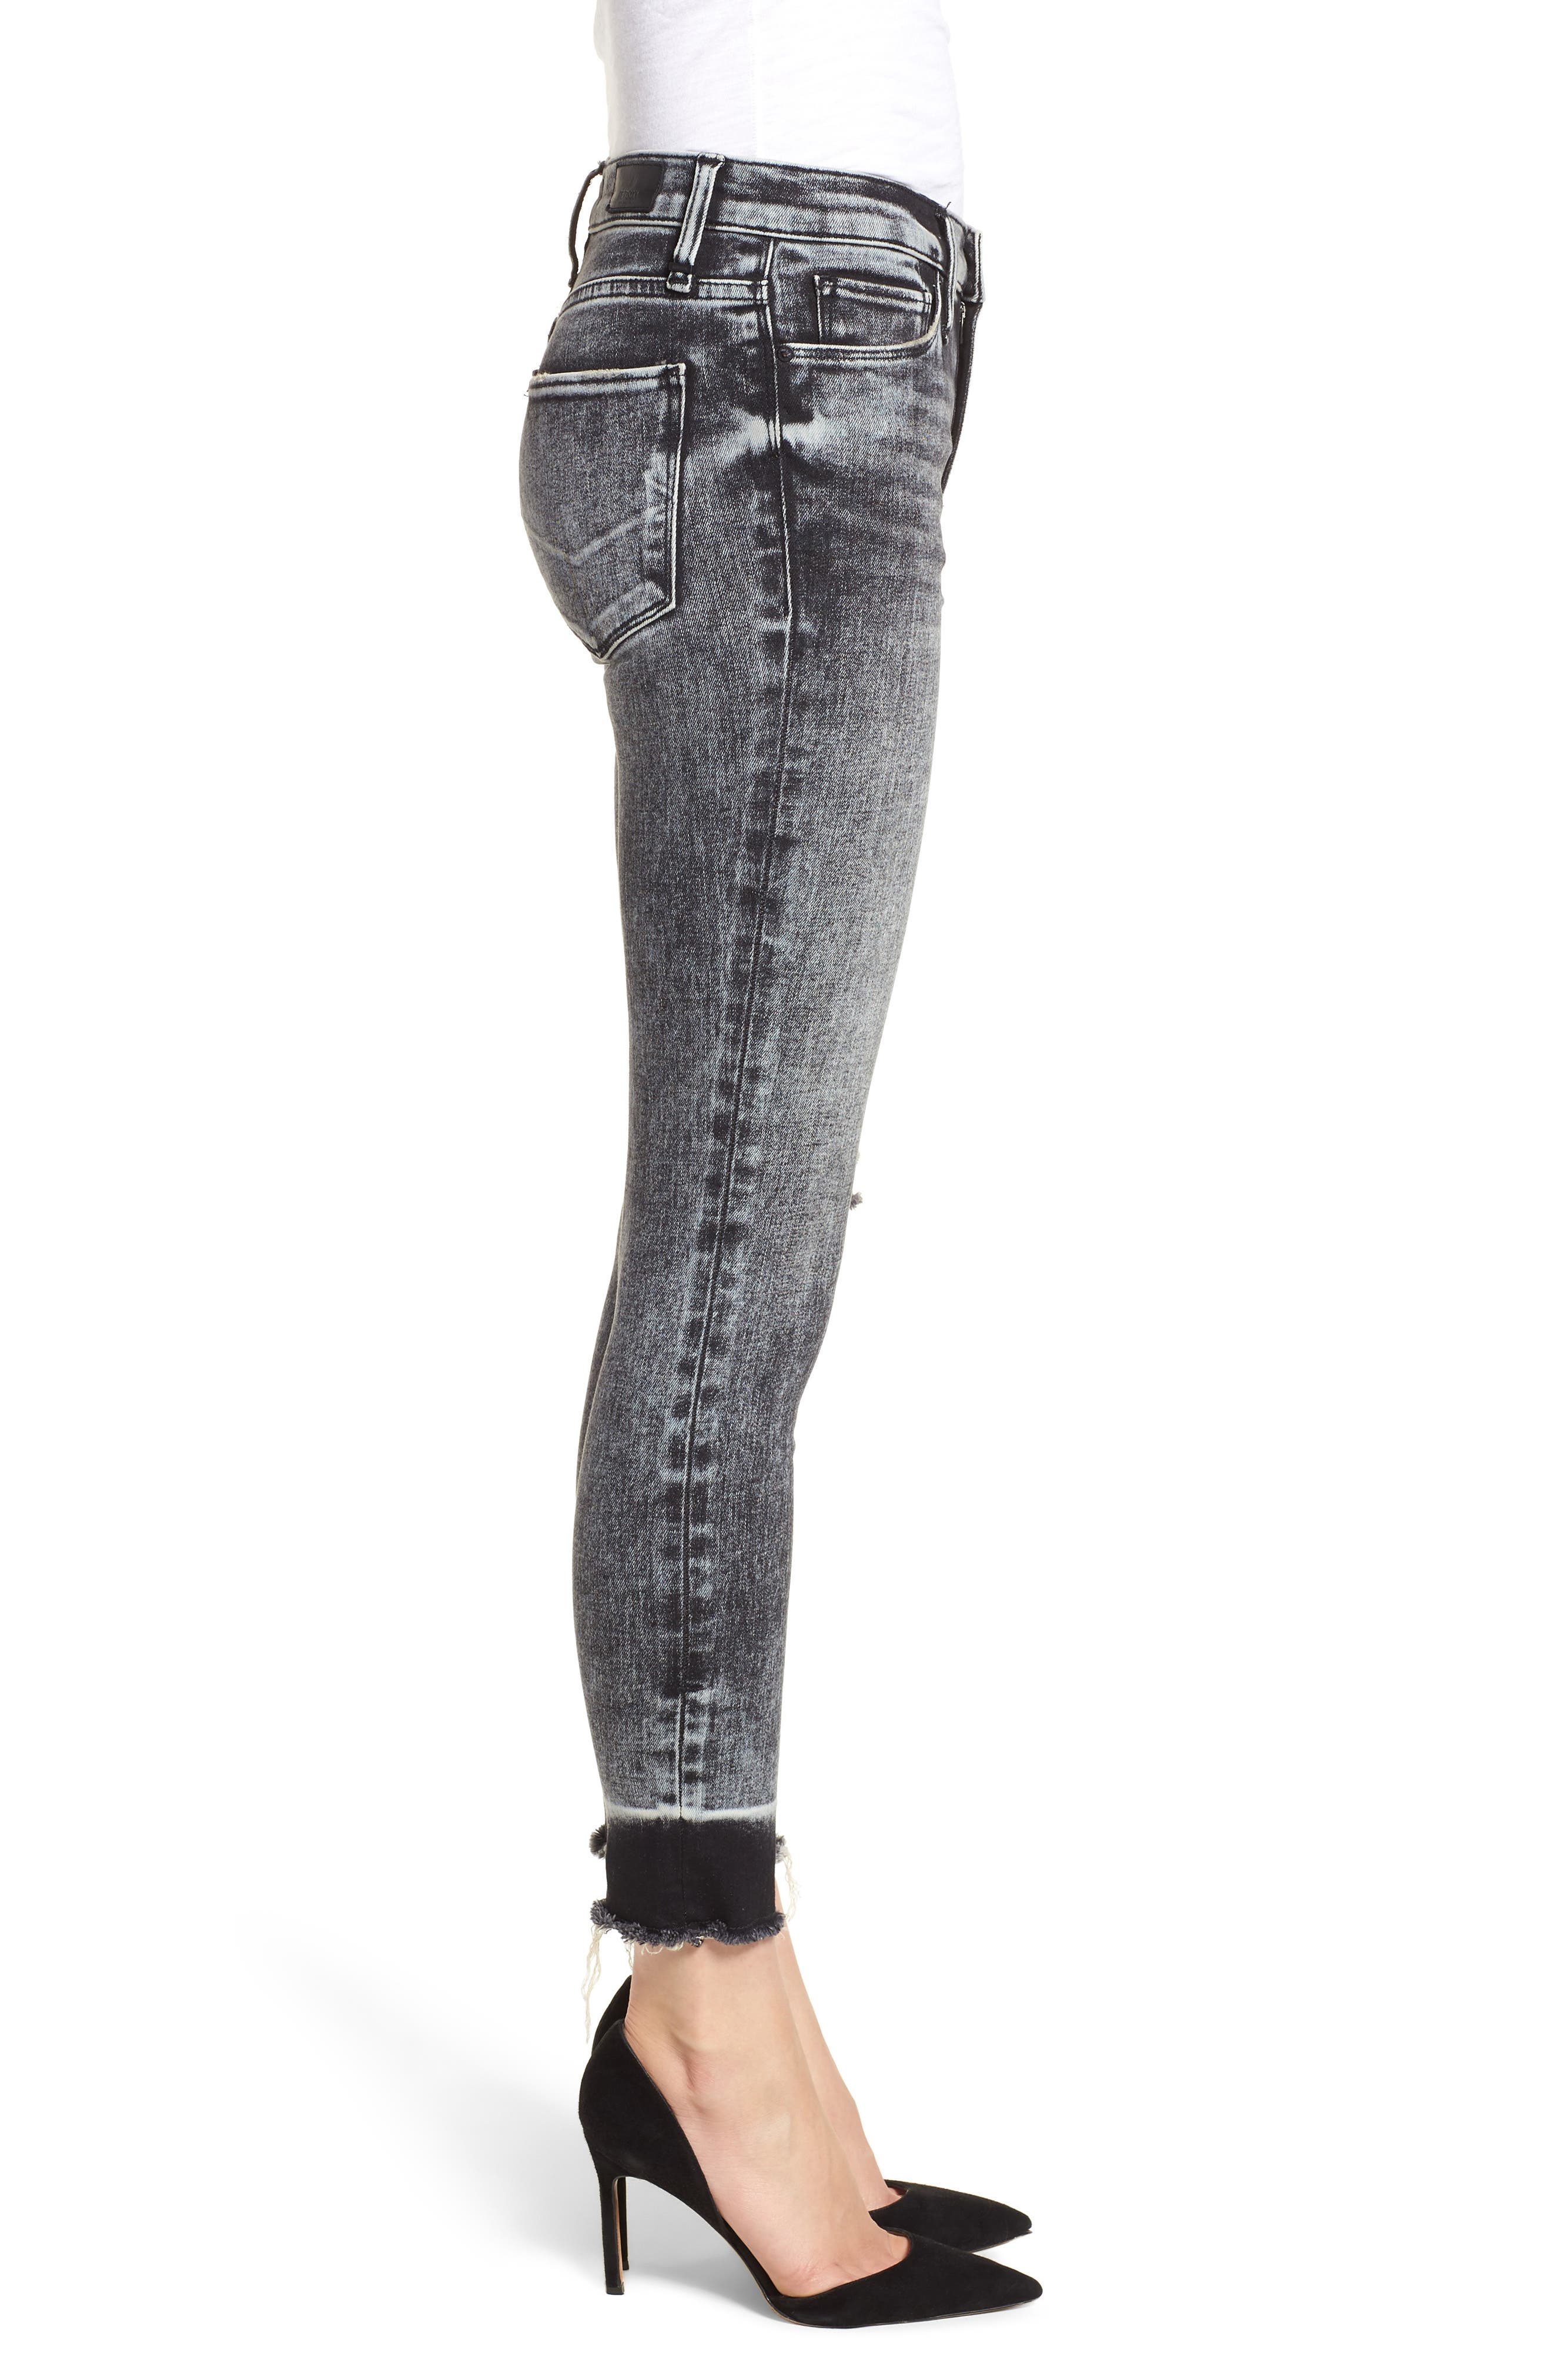 HUDSON JEANS, Nico Raw Hem Crop Super Skinny Jeans, Alternate thumbnail 4, color, PEPPER